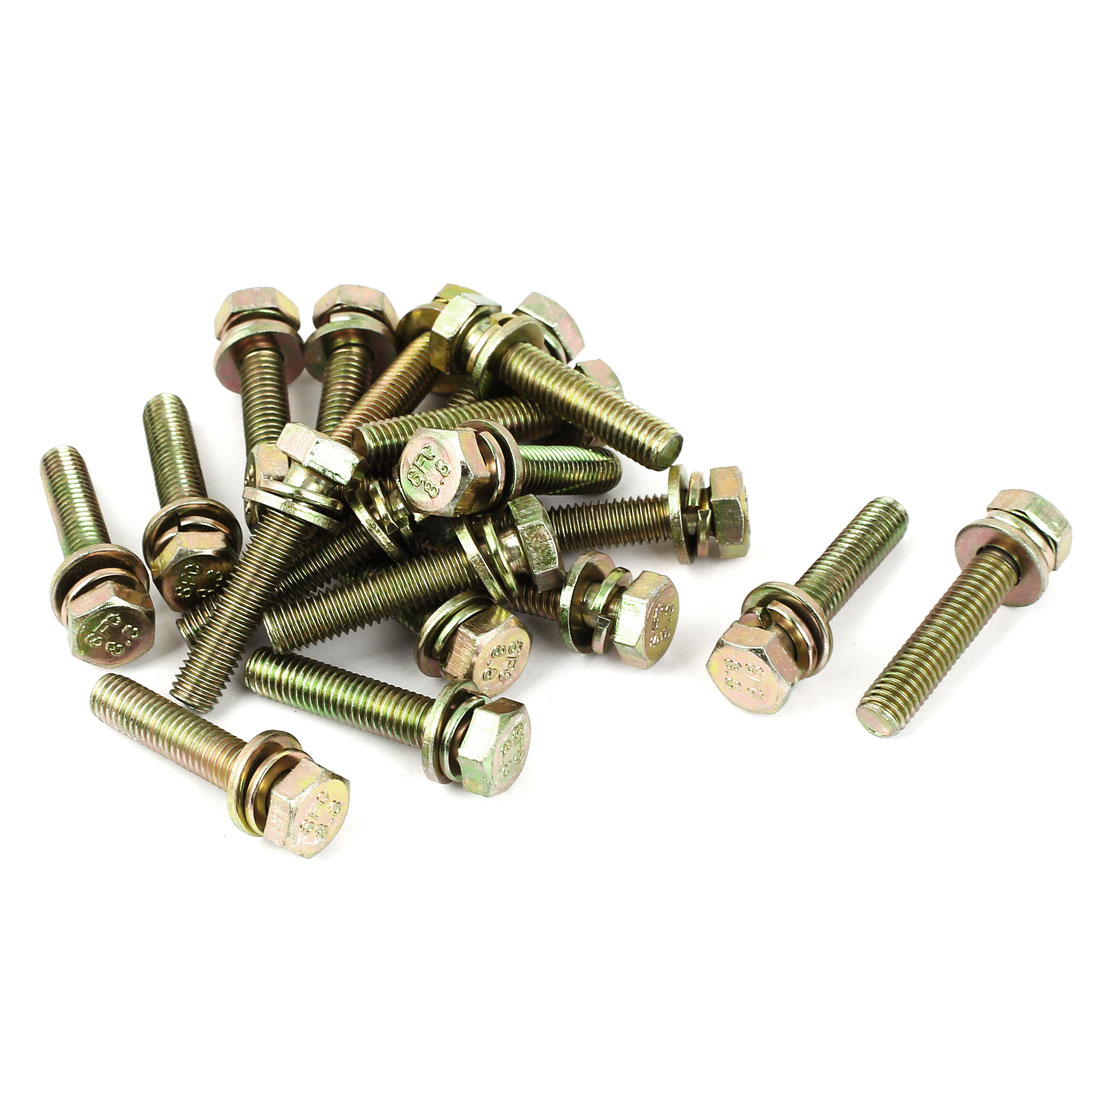 20pcs M8x40mm 8.8 Grade Yellow Zinc Plated Hex Head Bolt w Washer